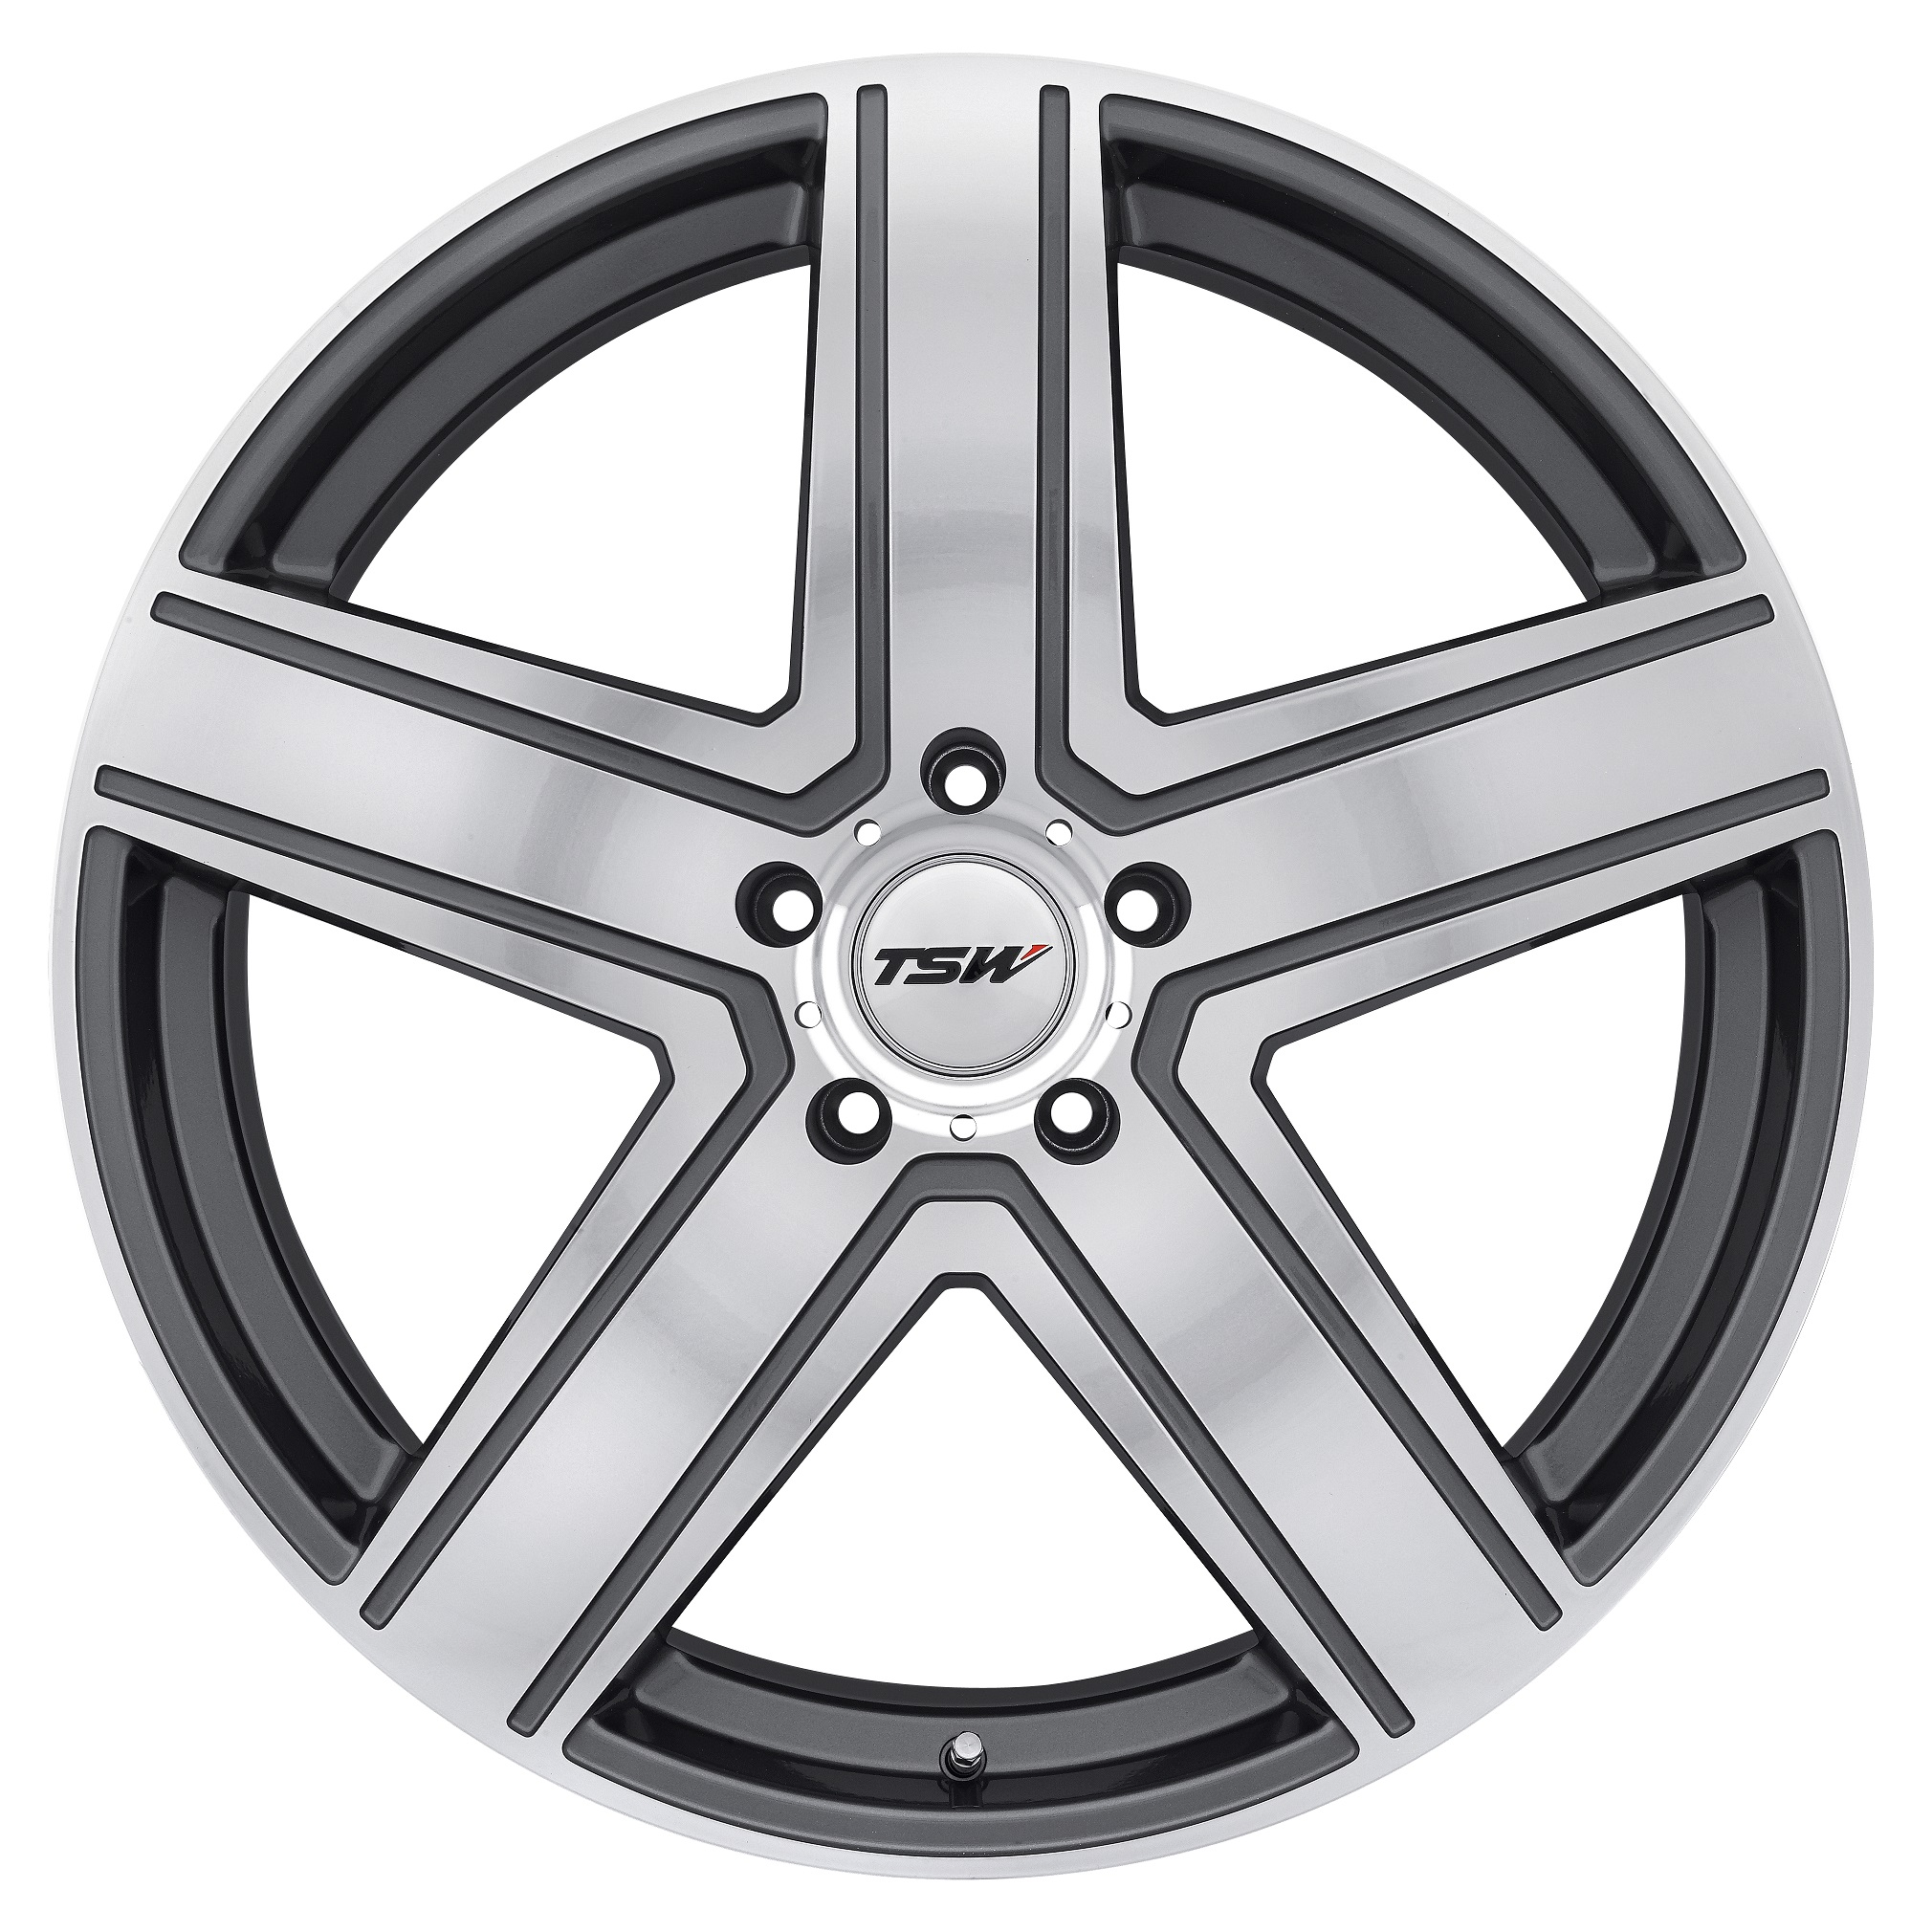 TSW Alloy Wheels Introduces New Regis Model, Targeted at Big Euro SUVs